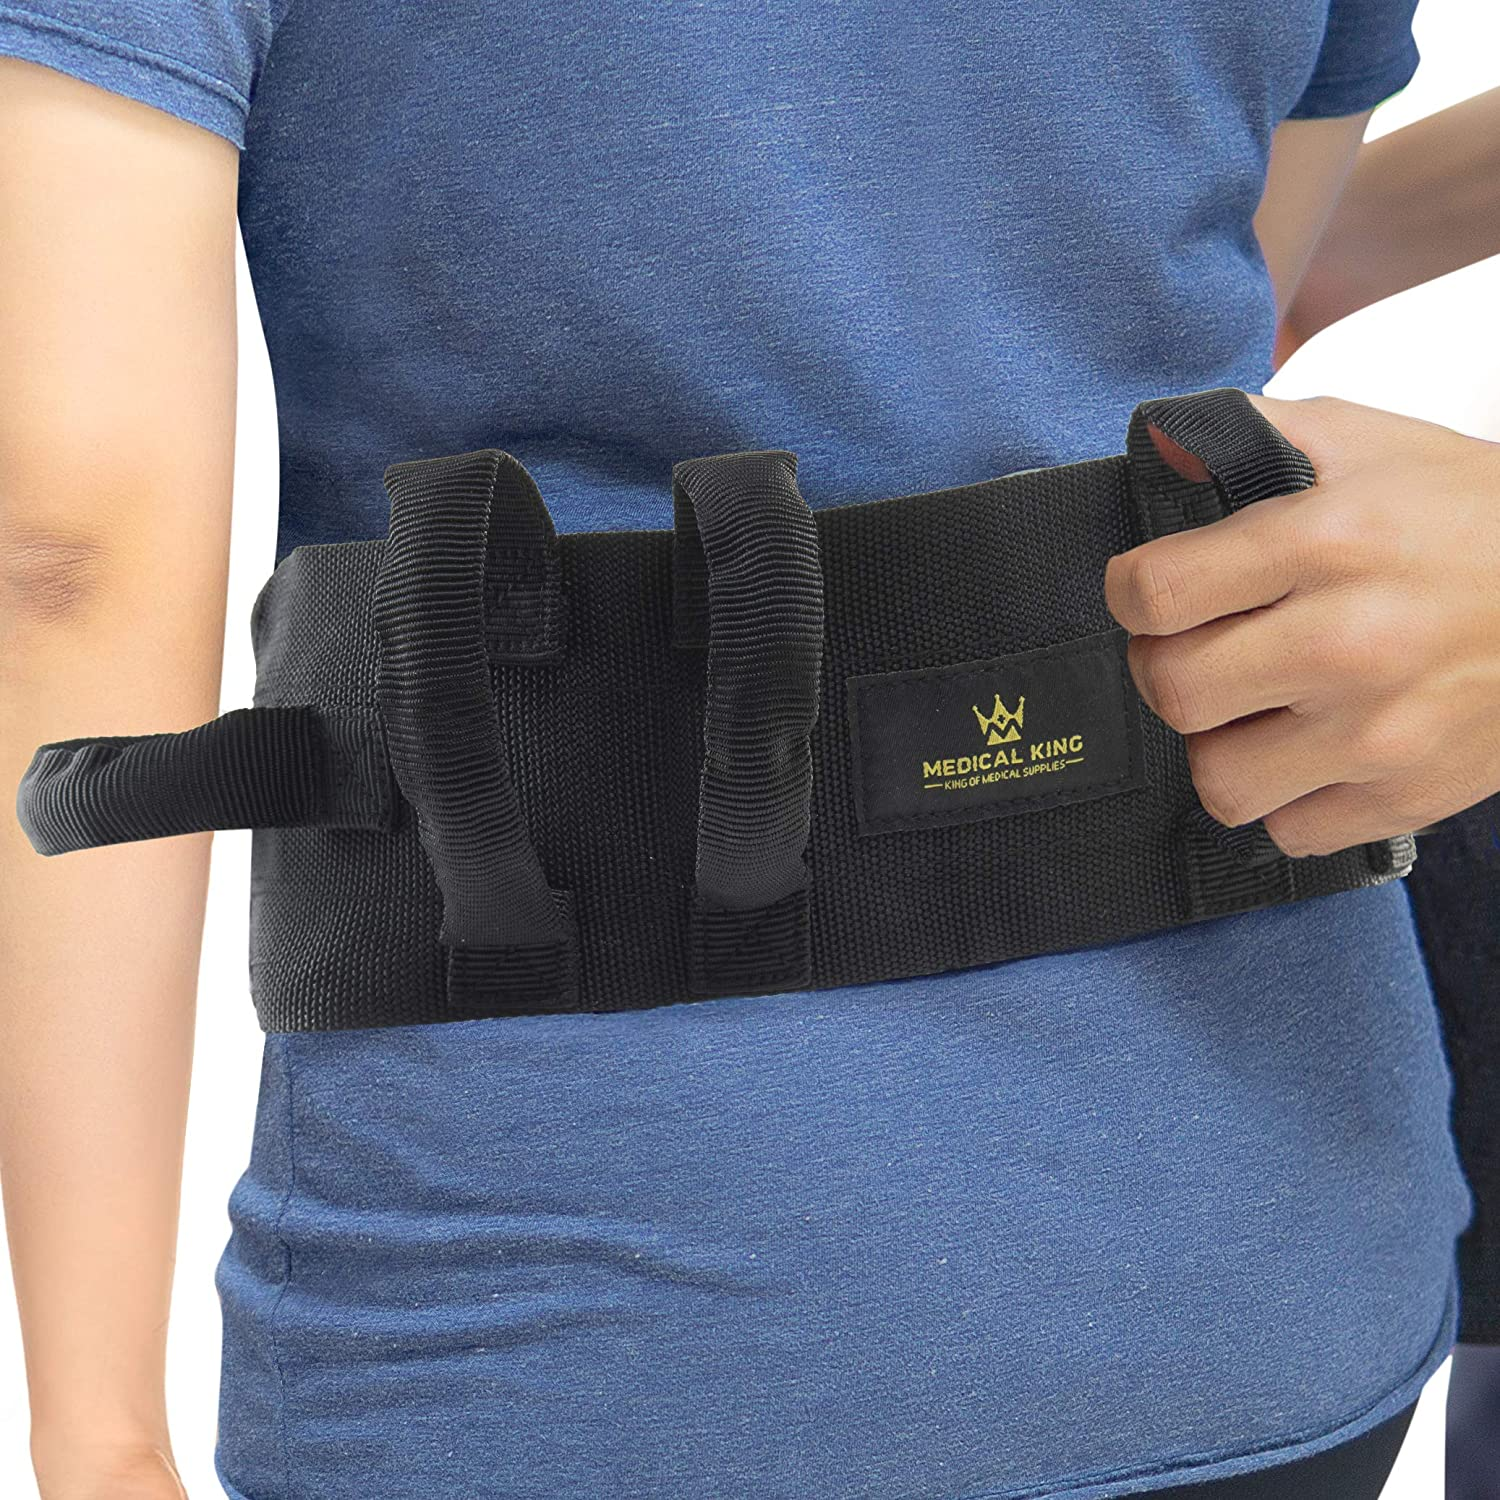 Amazon Com Transfer Belt Fle To Unlock 55 Holds Up 500 Lbs Or Lifting Seniors Gait Belt With 6 Handles Great Lift Belt For Elderly Therapy Handicap Etc Walking